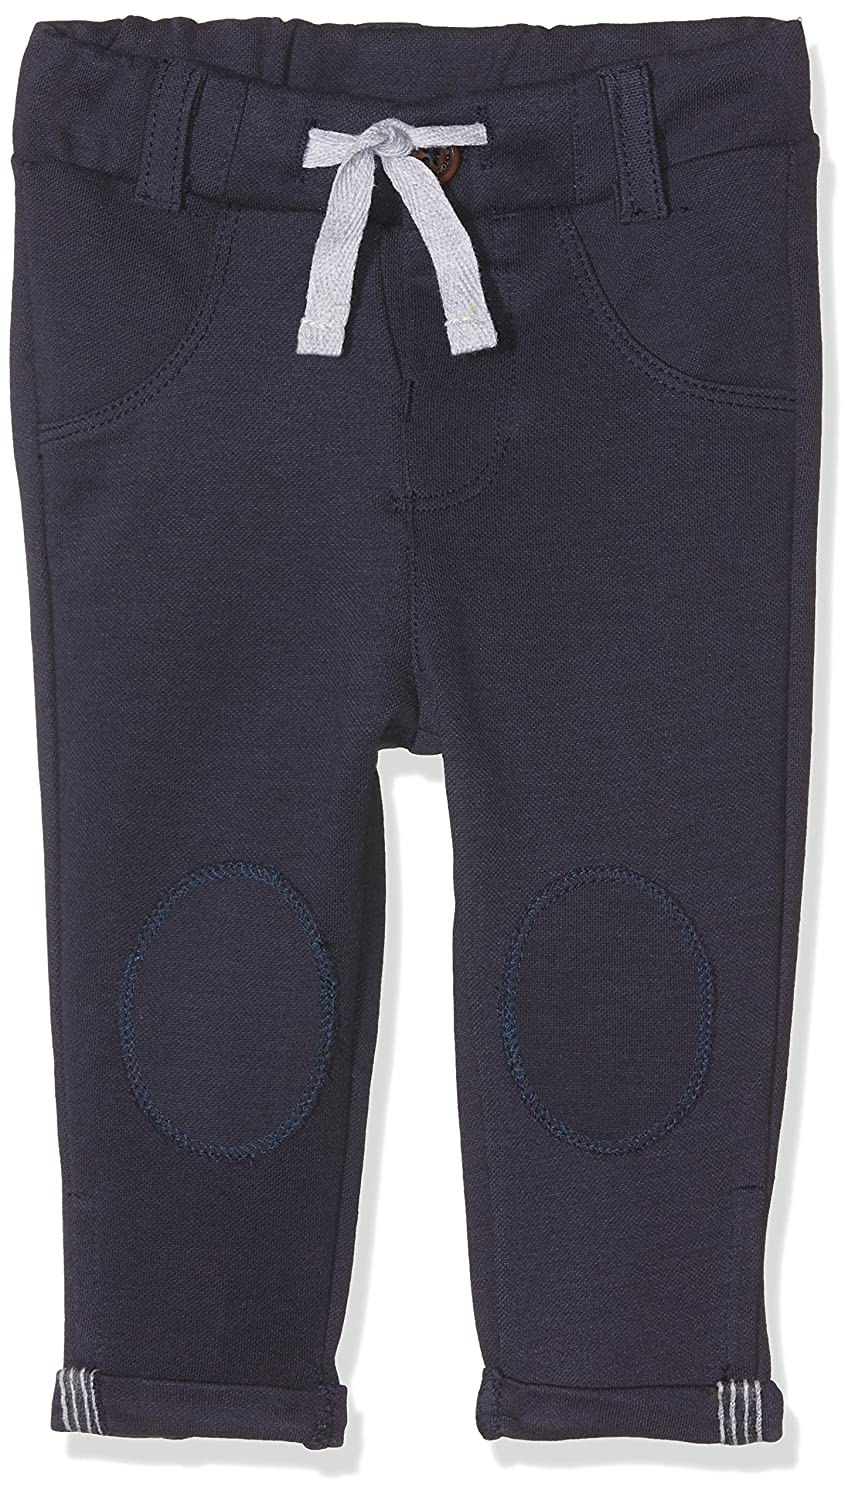 Bas de surv/êtement B/éb/é gar/çon TOM TAILOR Sweat Pants